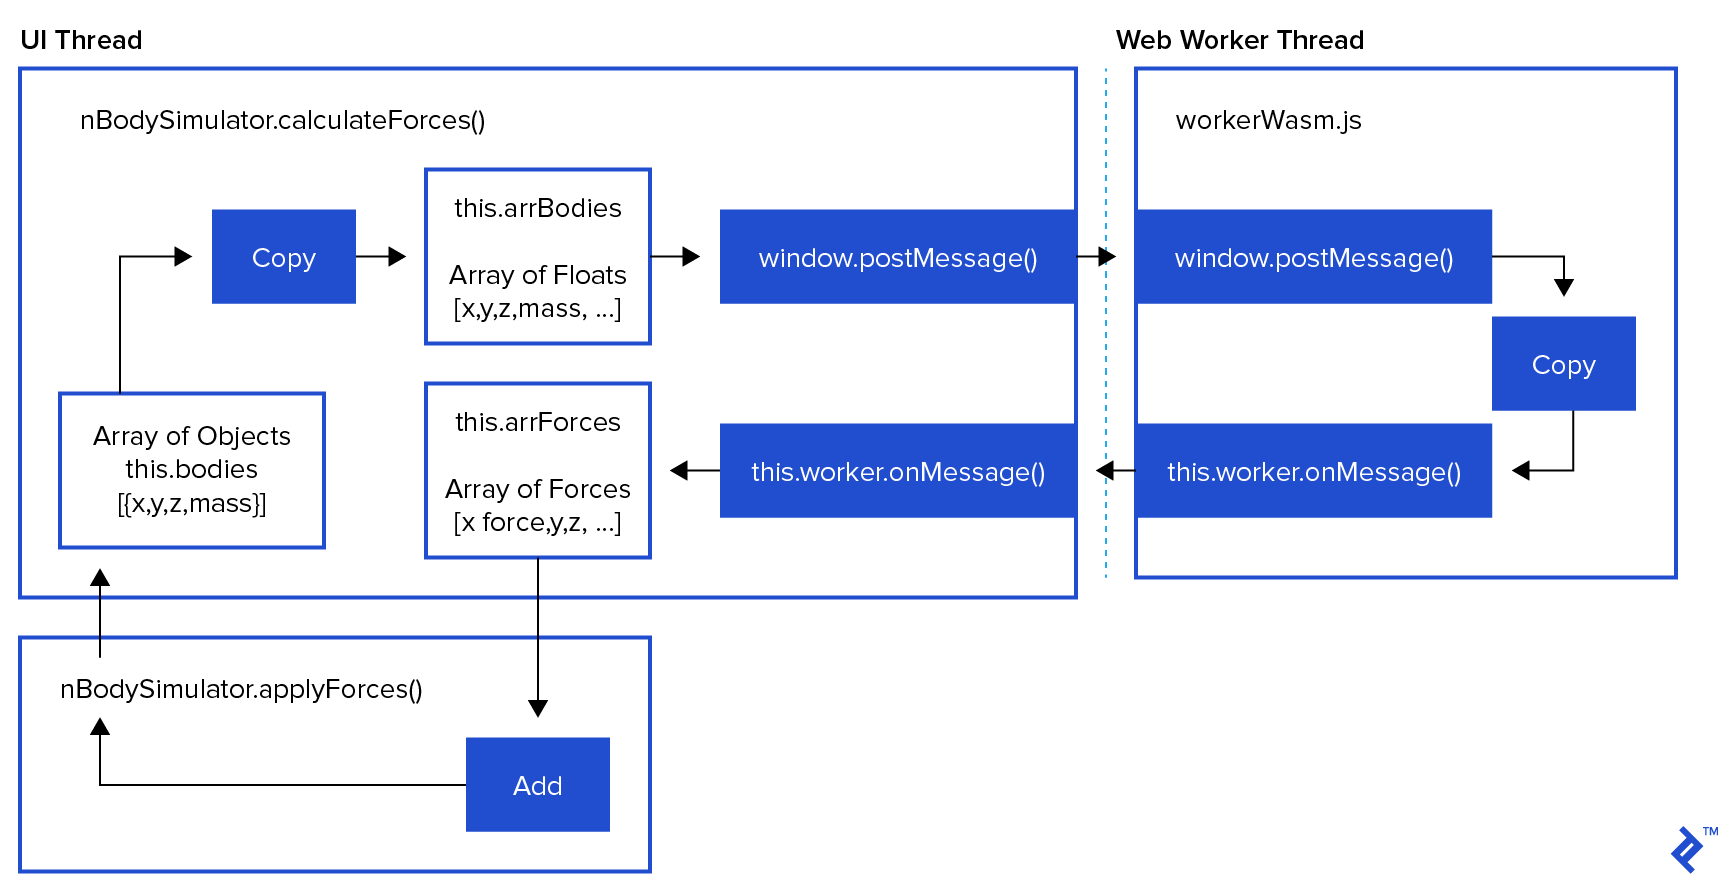 Moving data in/out of the web worker